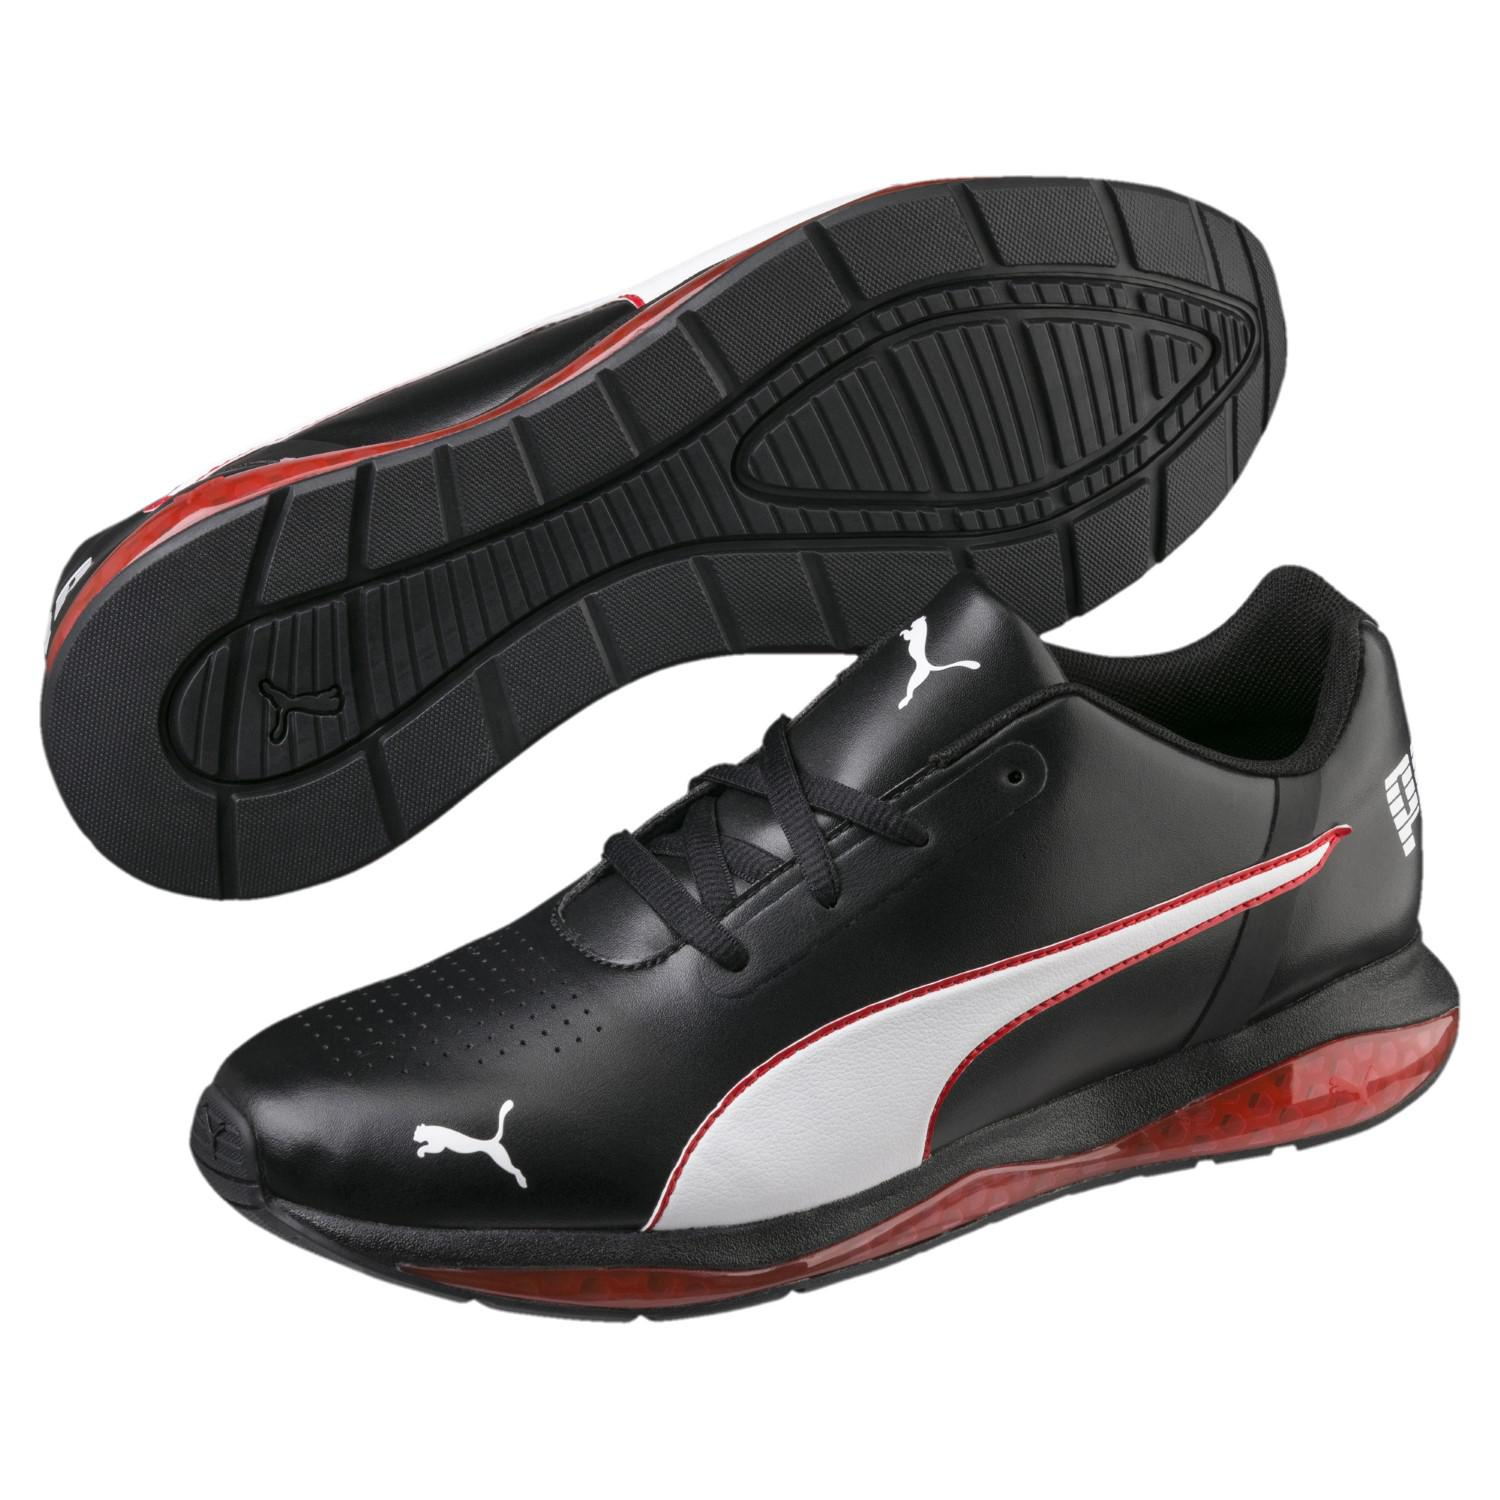 Lyst - PUMA Cell Ultimate Sl Running Shoes in Black for Men 4a04cdd9c